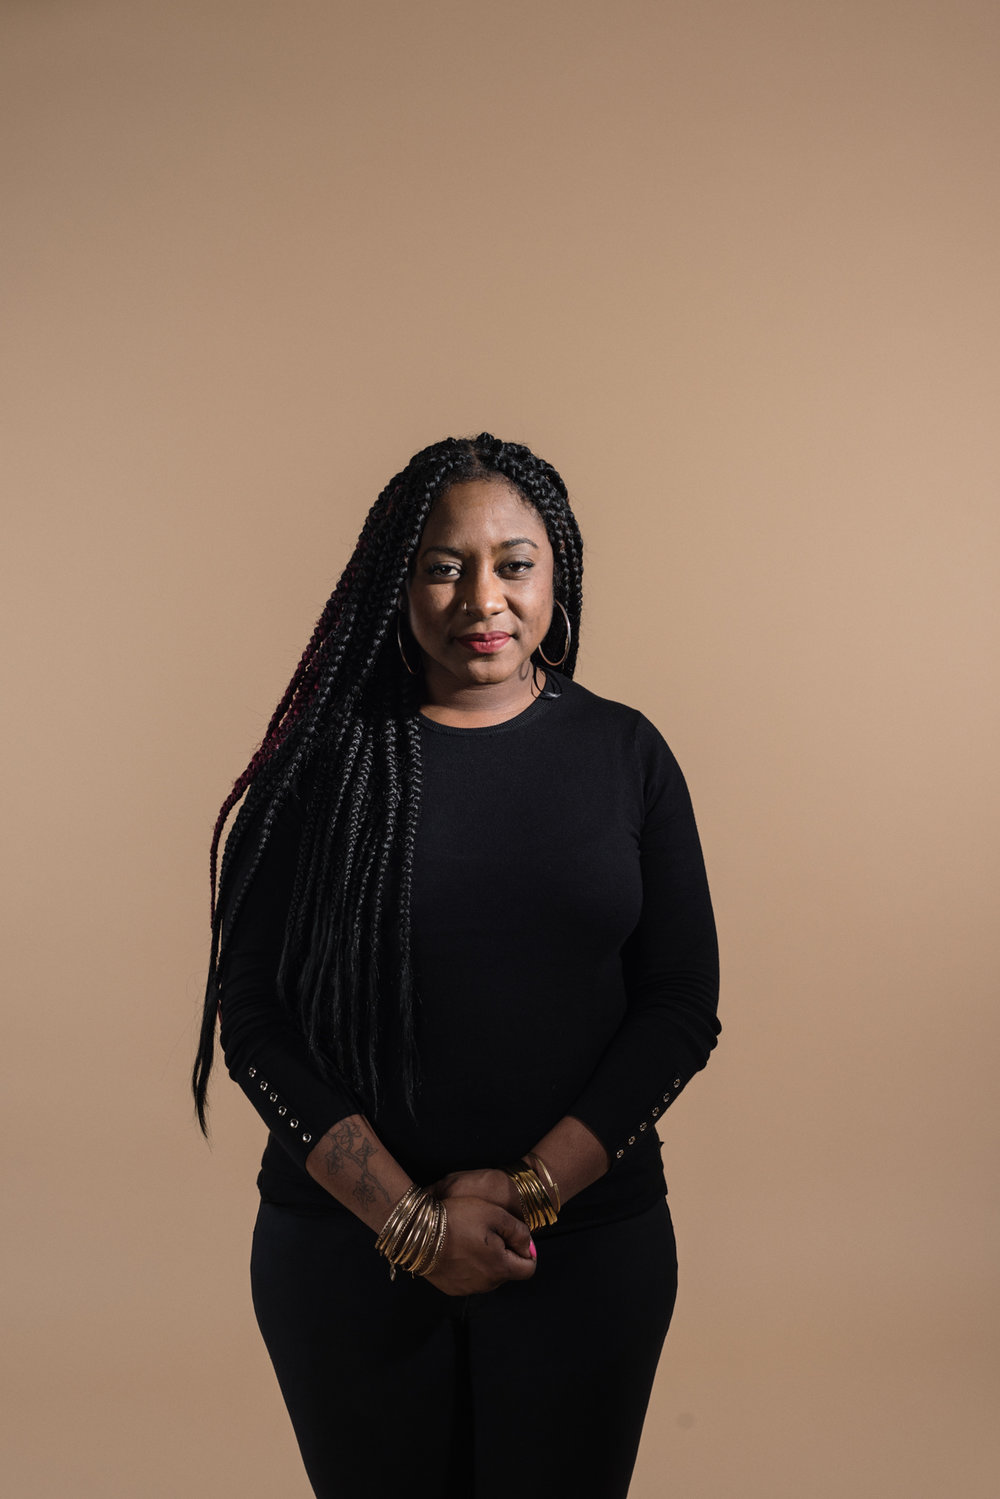 Alicia Garza, Black Lives Matter Co-founder